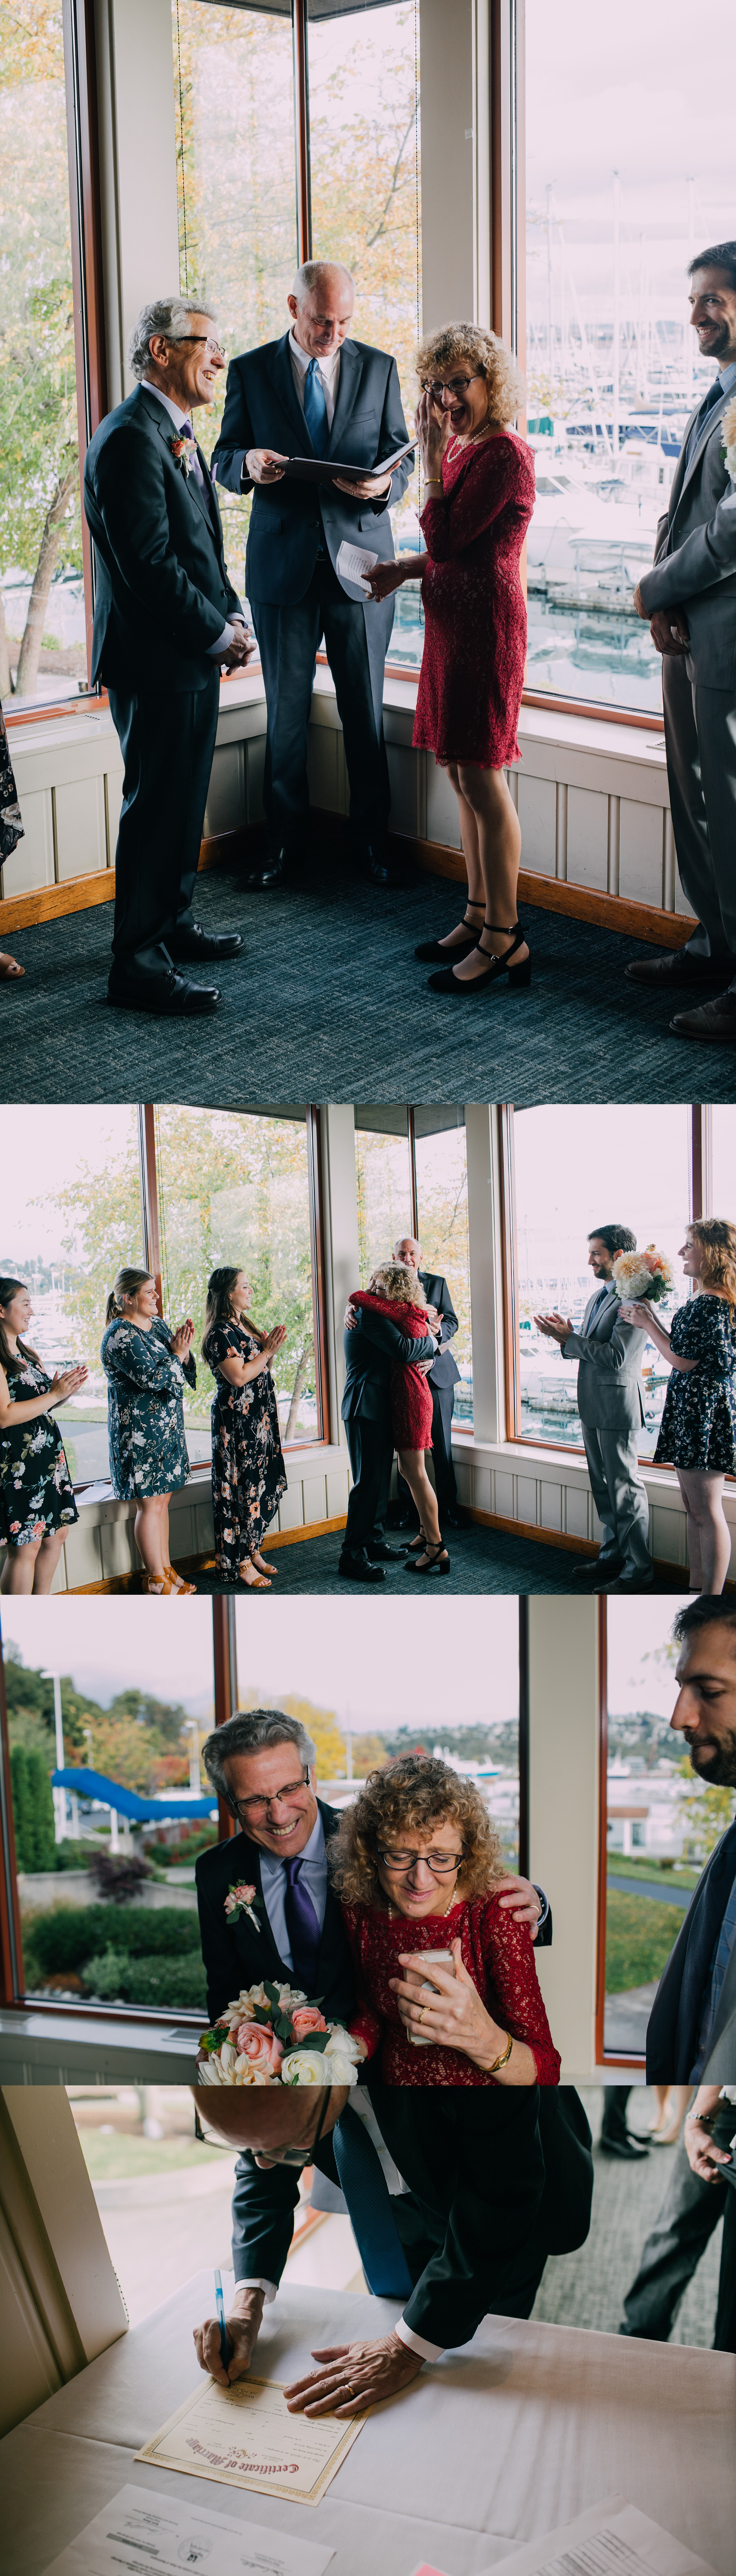 intimate small wedding photographer seattle washington pnw restaurant reception -5.jpg